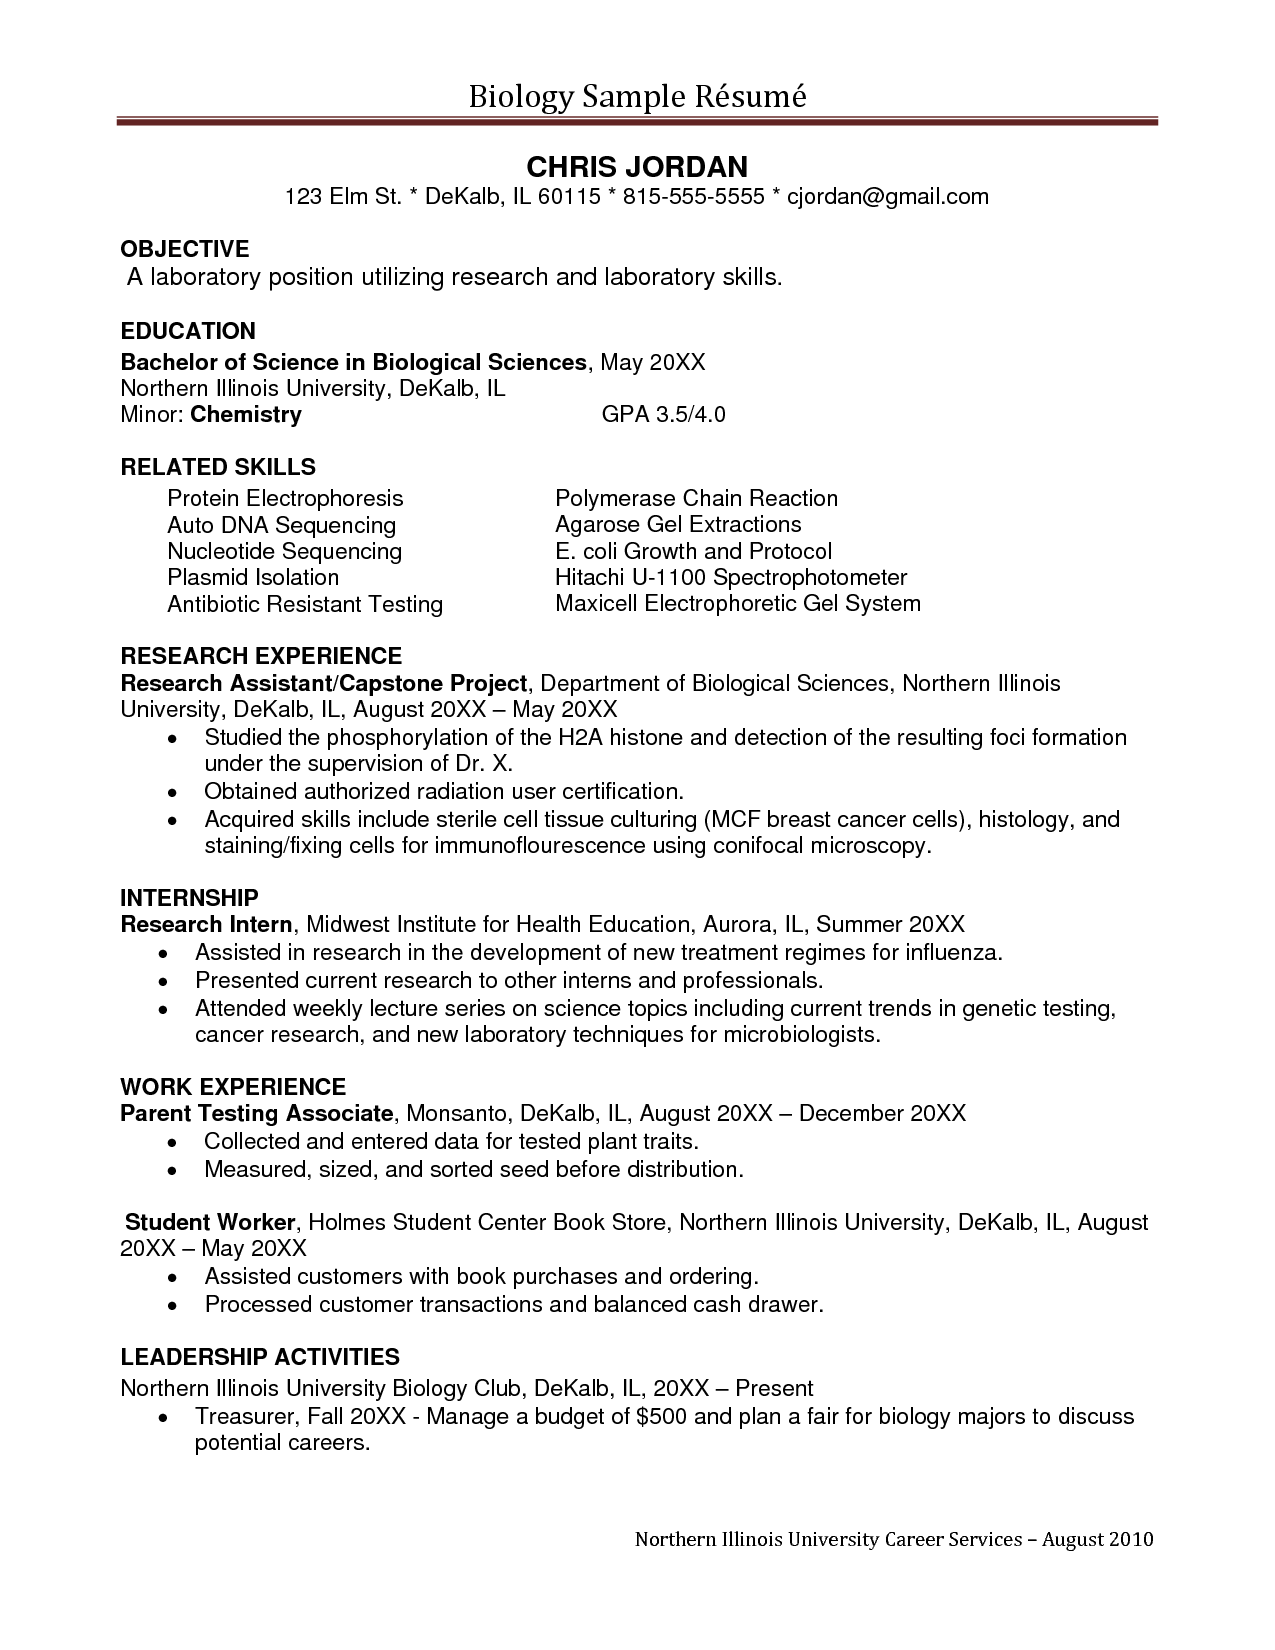 Examples Of Resume Objectives Sample Undergraduate Research Assistant Resume Sampleĺ